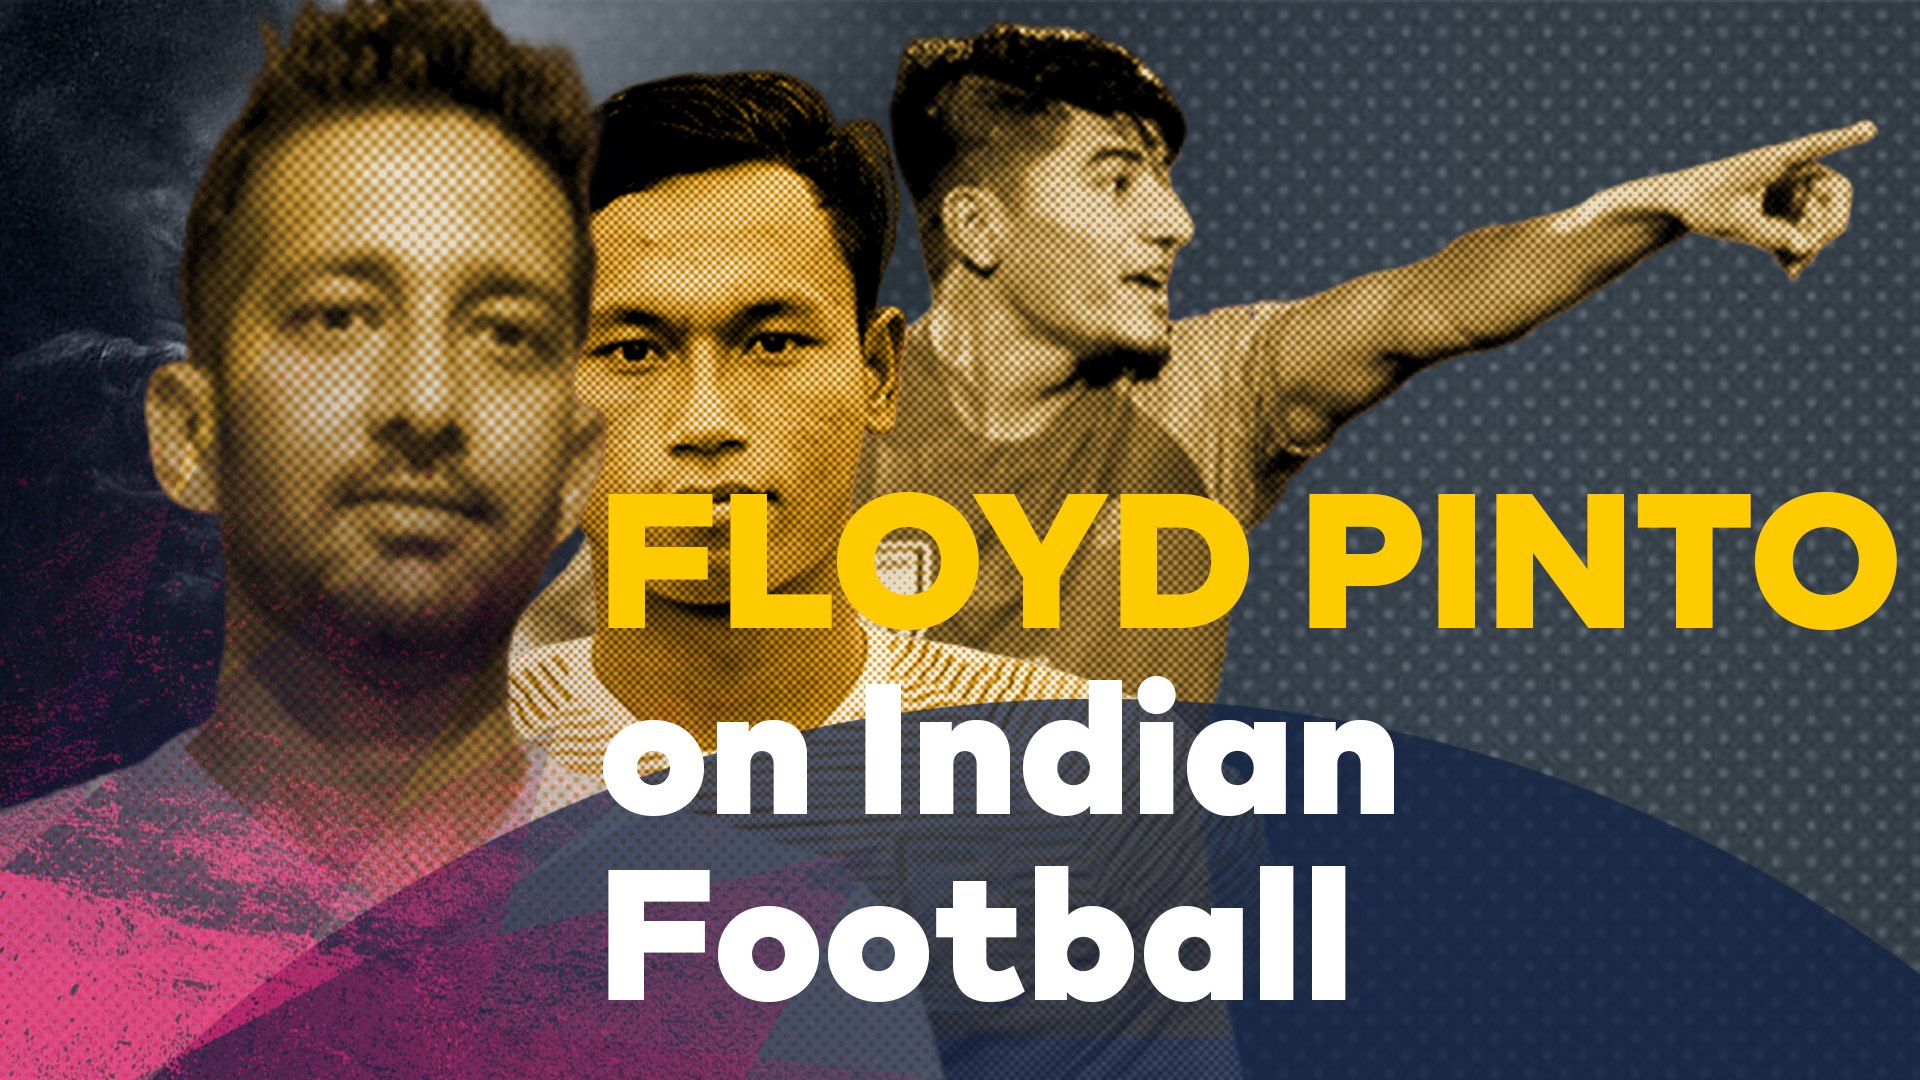 Indian football coach Floyd Pinto interview